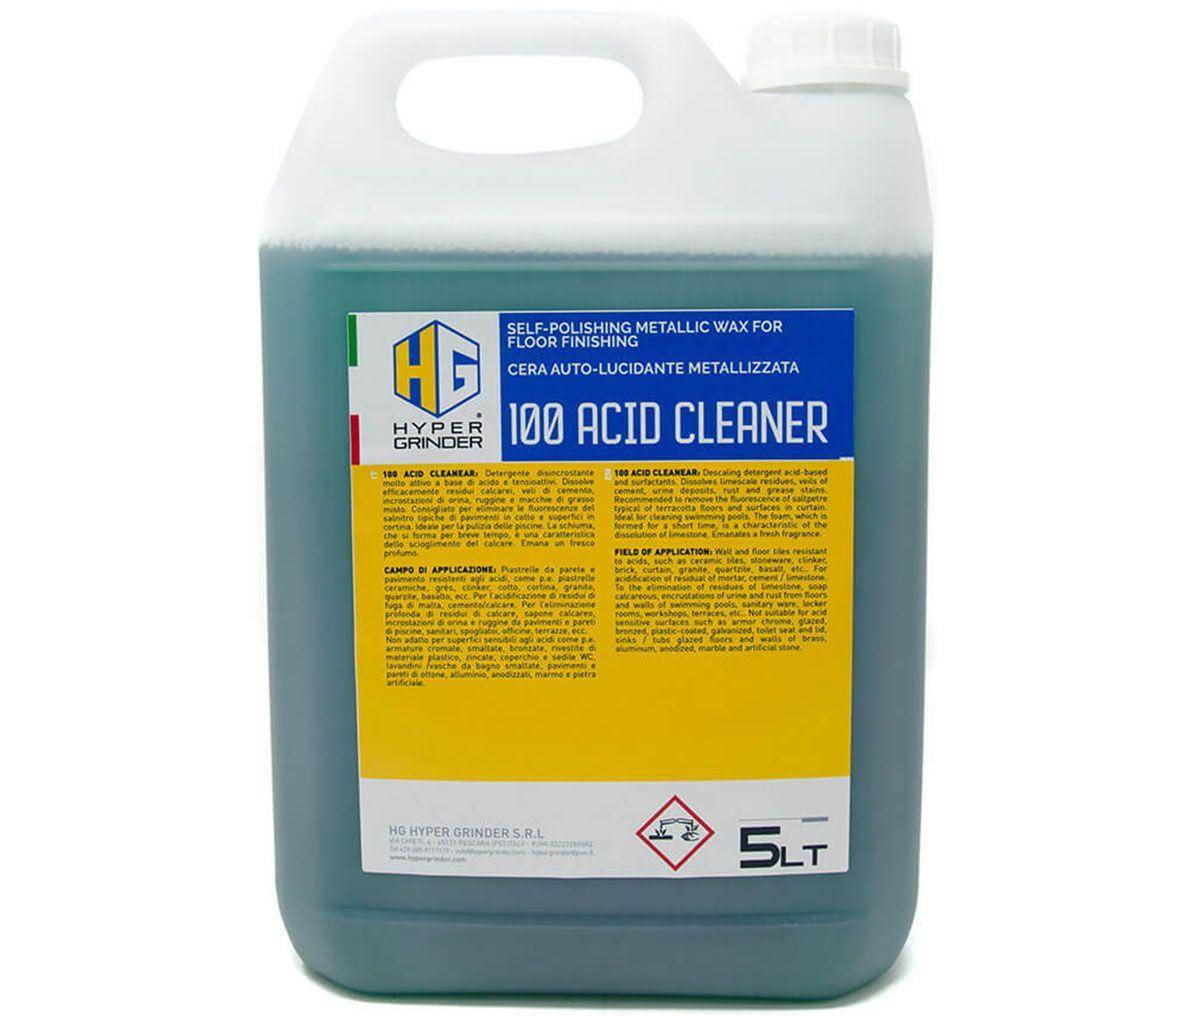 100 acid cleaner 1434